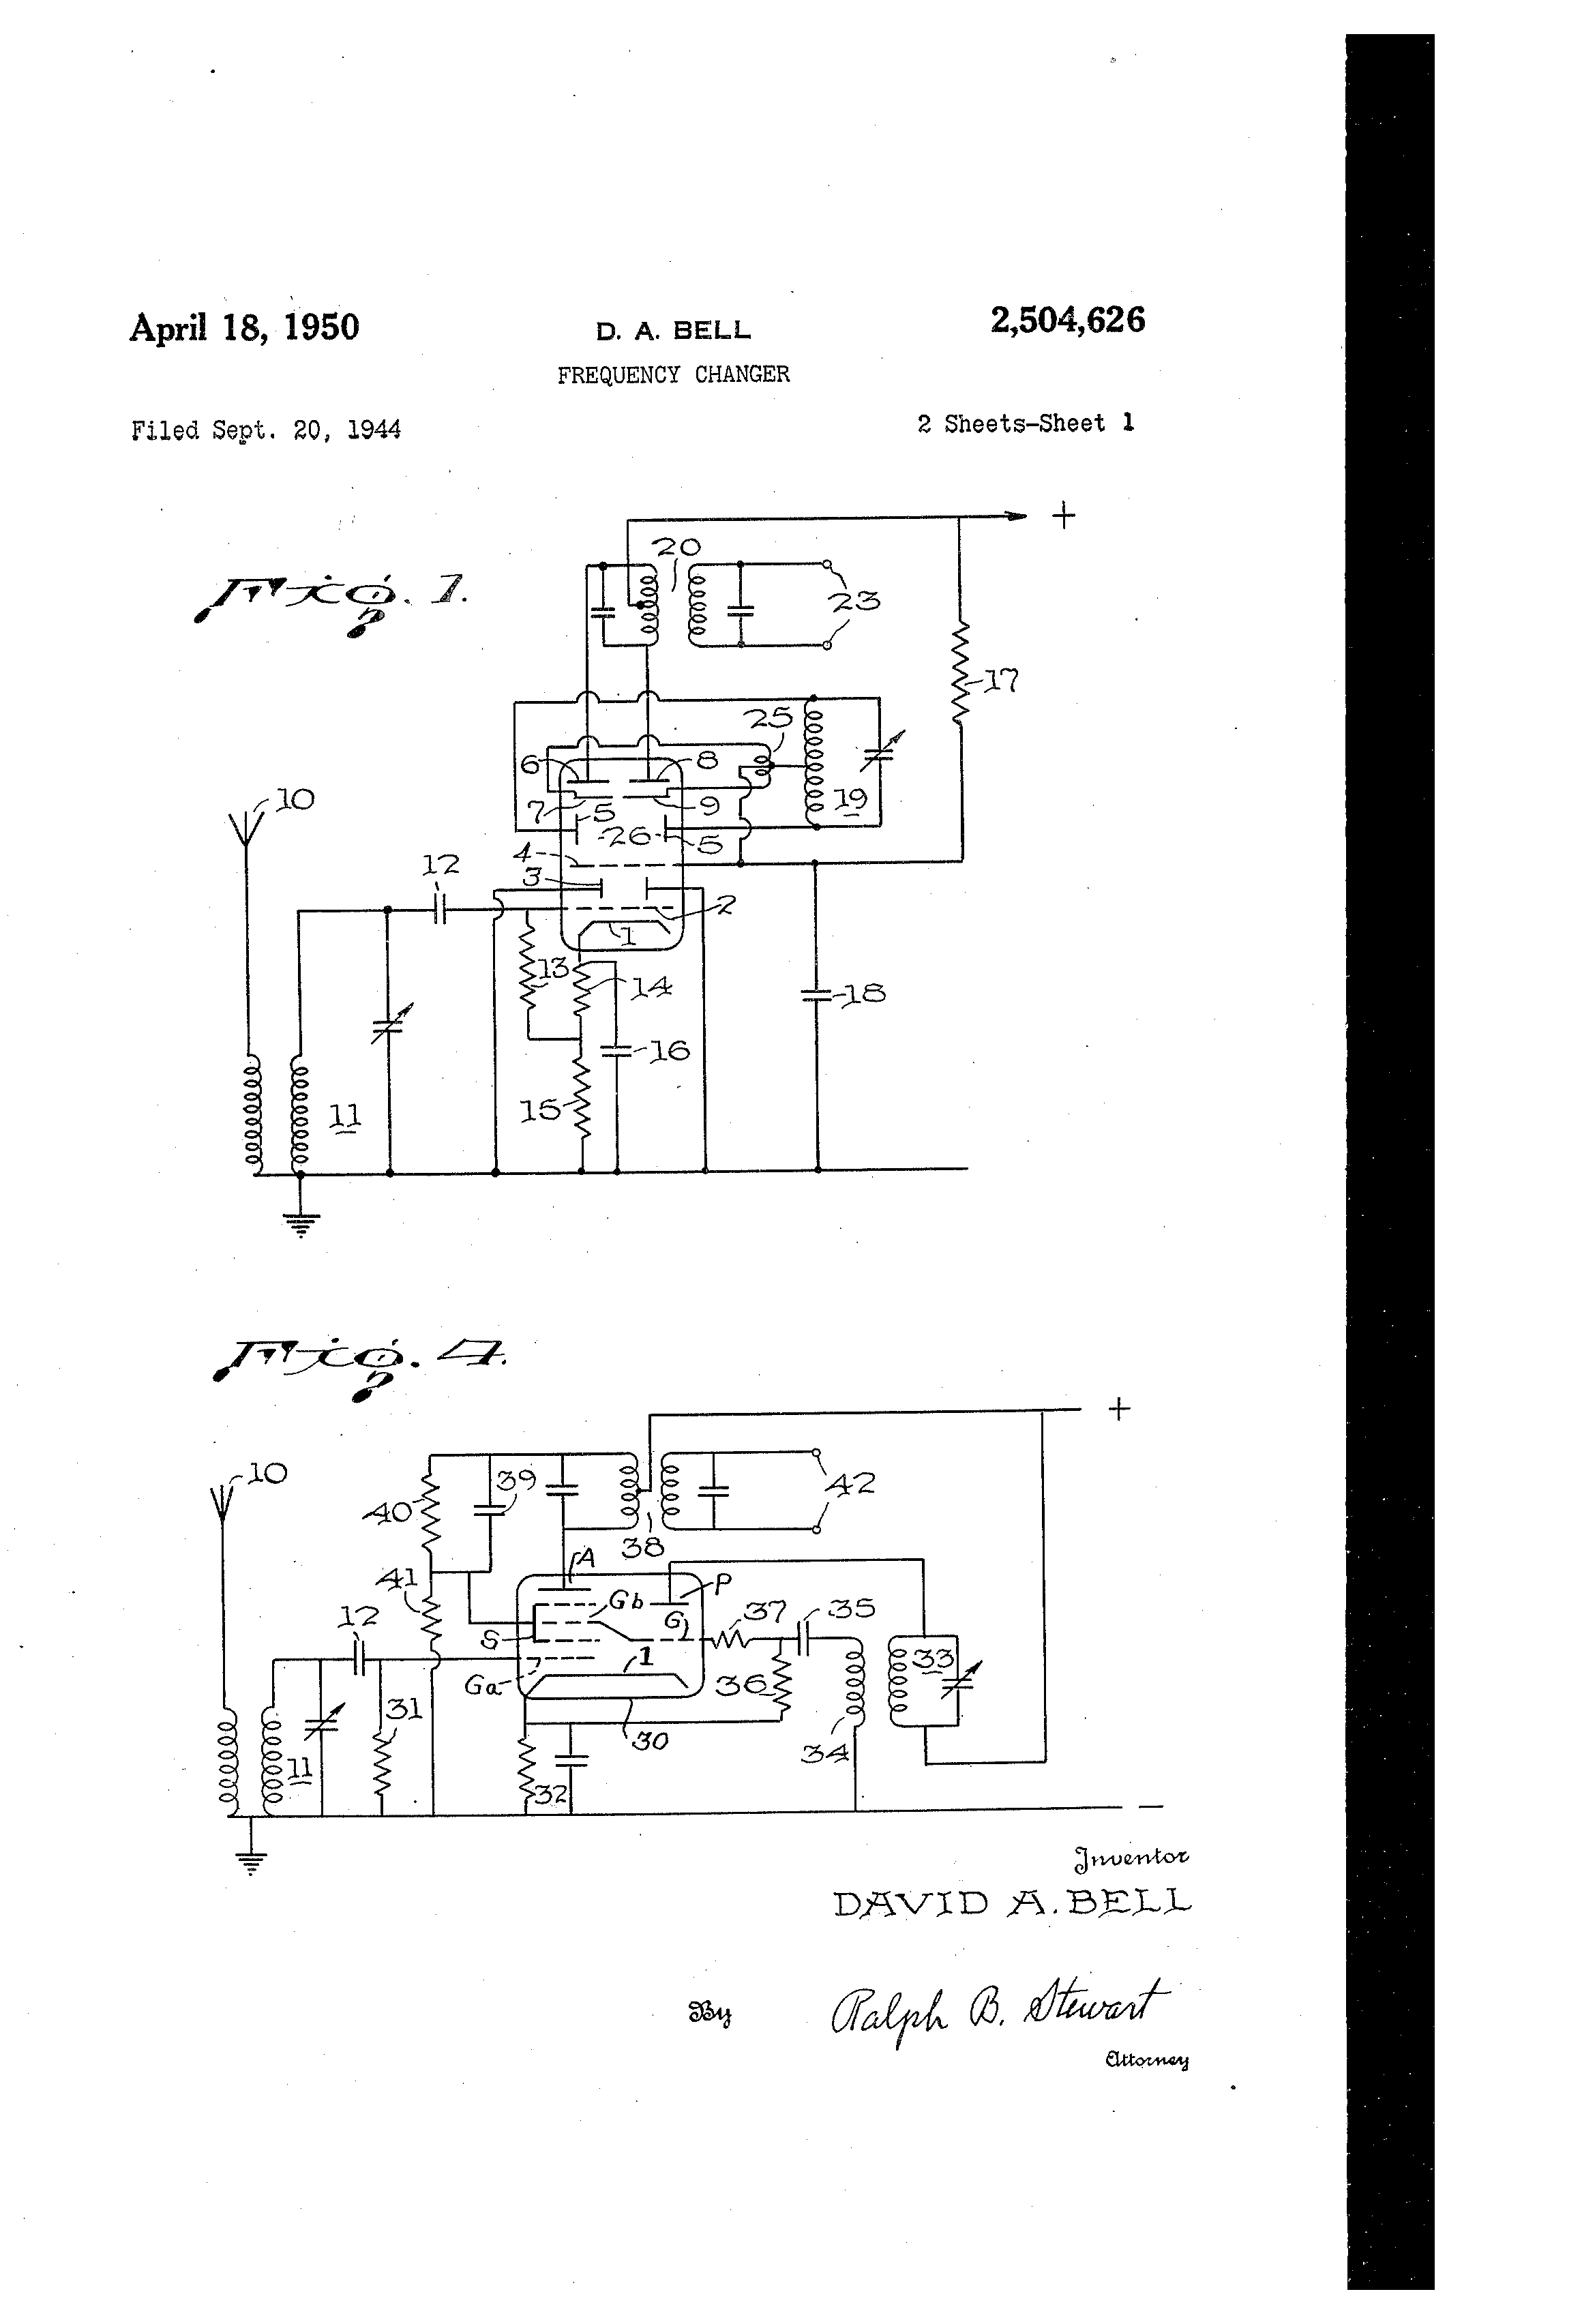 patent us2504626 frequency changer patents Crosley Radio Schematic Diagrams patent drawing